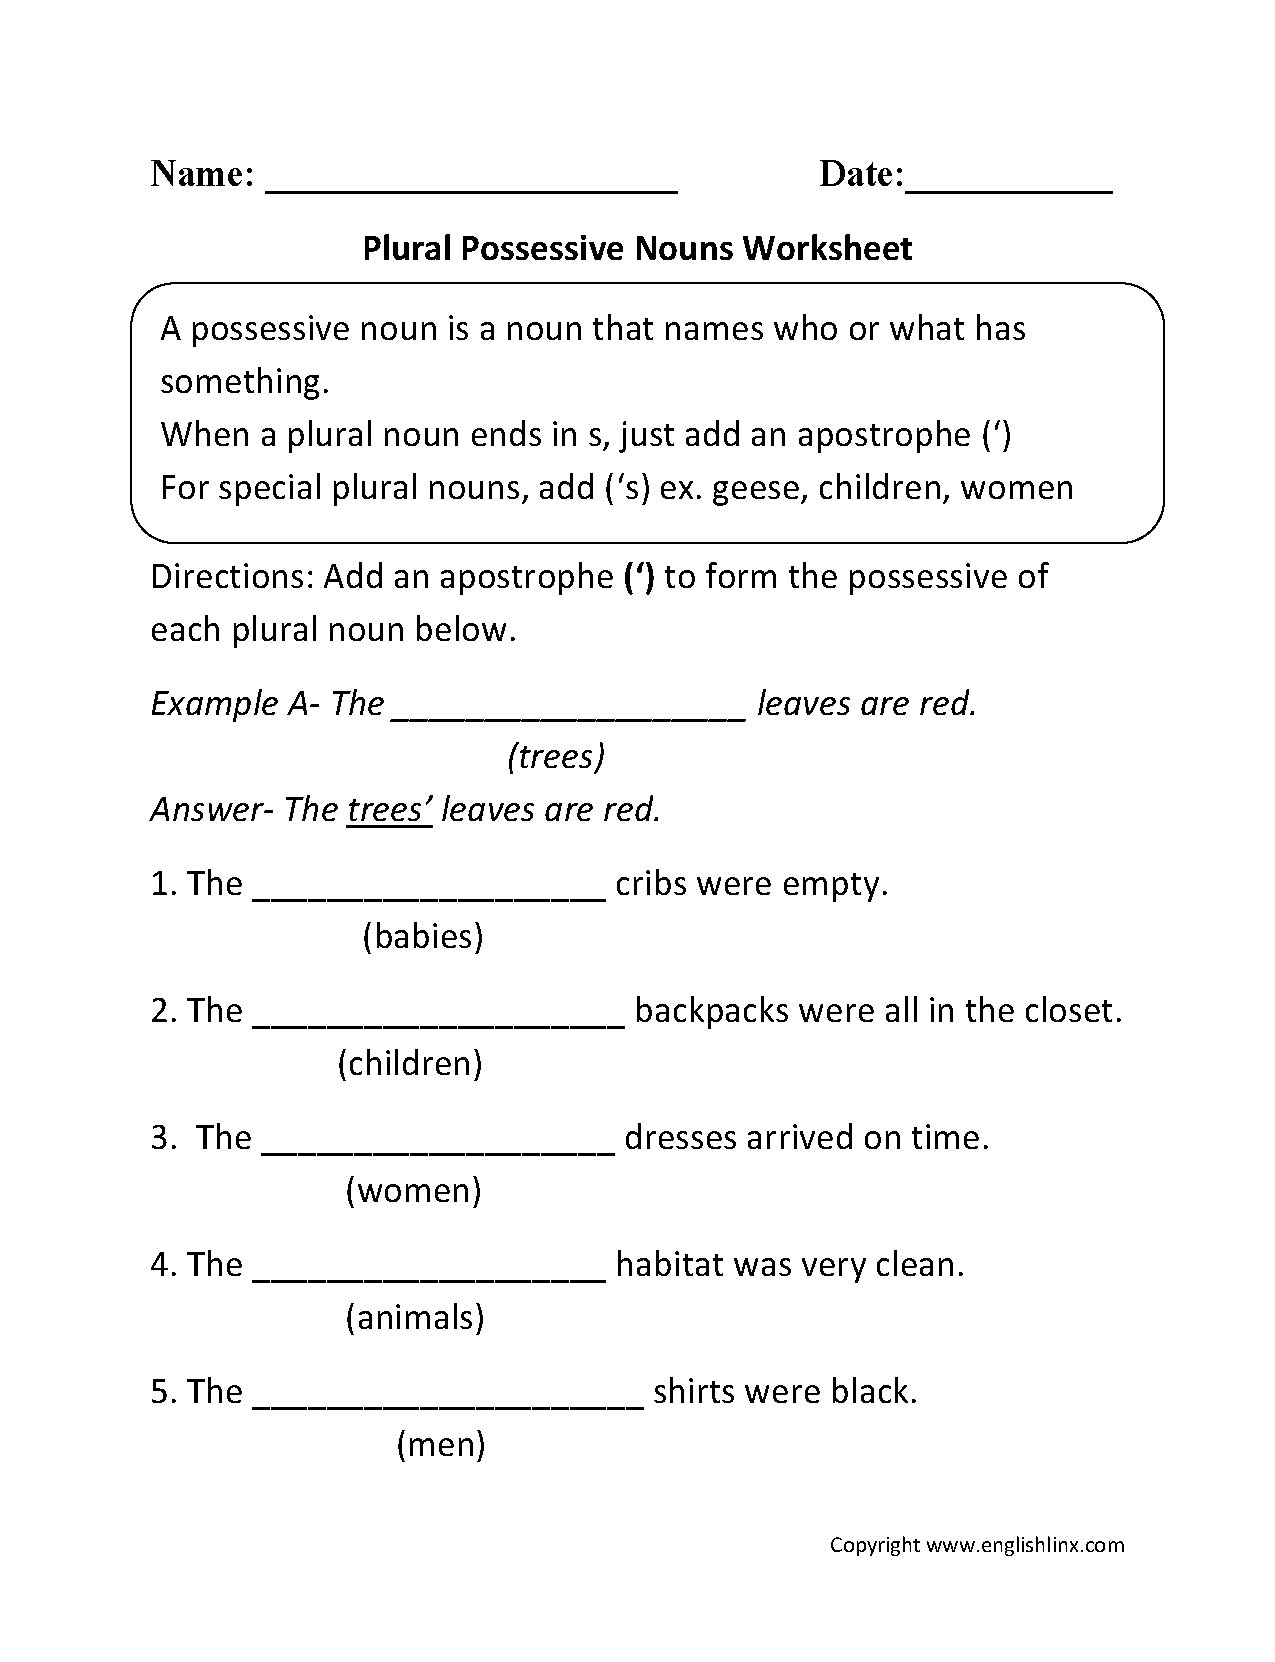 Aldiablosus  Unique Nouns Worksheets  Possessive Nouns Worksheets With Luxury Possessive Nouns Worksheets With Amusing Light Sources Worksheet Also World History Printable Worksheets In Addition Past Tense Present Tense Future Tense Worksheets And Worksheets On Quadratic Equations As Well As Days And Months Worksheet Additionally Eatwell Plate Worksheet From Englishlinxcom With Aldiablosus  Luxury Nouns Worksheets  Possessive Nouns Worksheets With Amusing Possessive Nouns Worksheets And Unique Light Sources Worksheet Also World History Printable Worksheets In Addition Past Tense Present Tense Future Tense Worksheets From Englishlinxcom